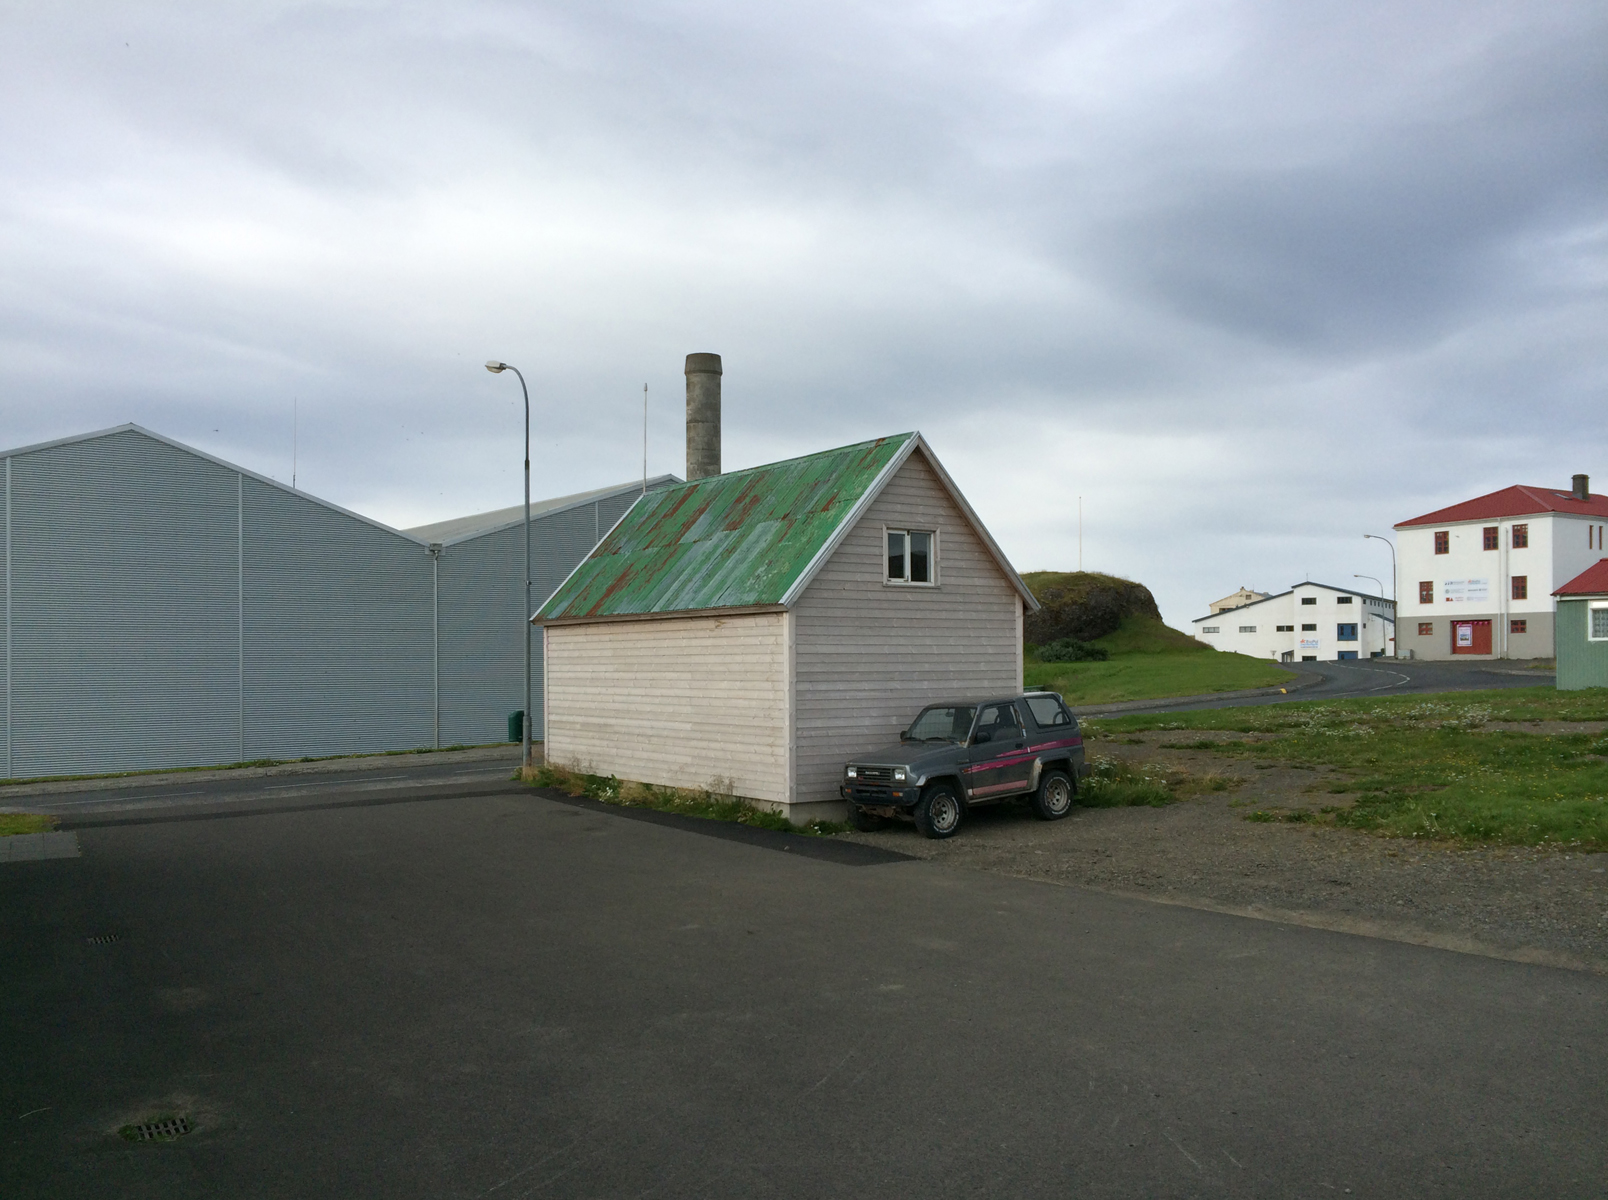 In expanse of asphalt and grey sky, a small building with a green metal roof.